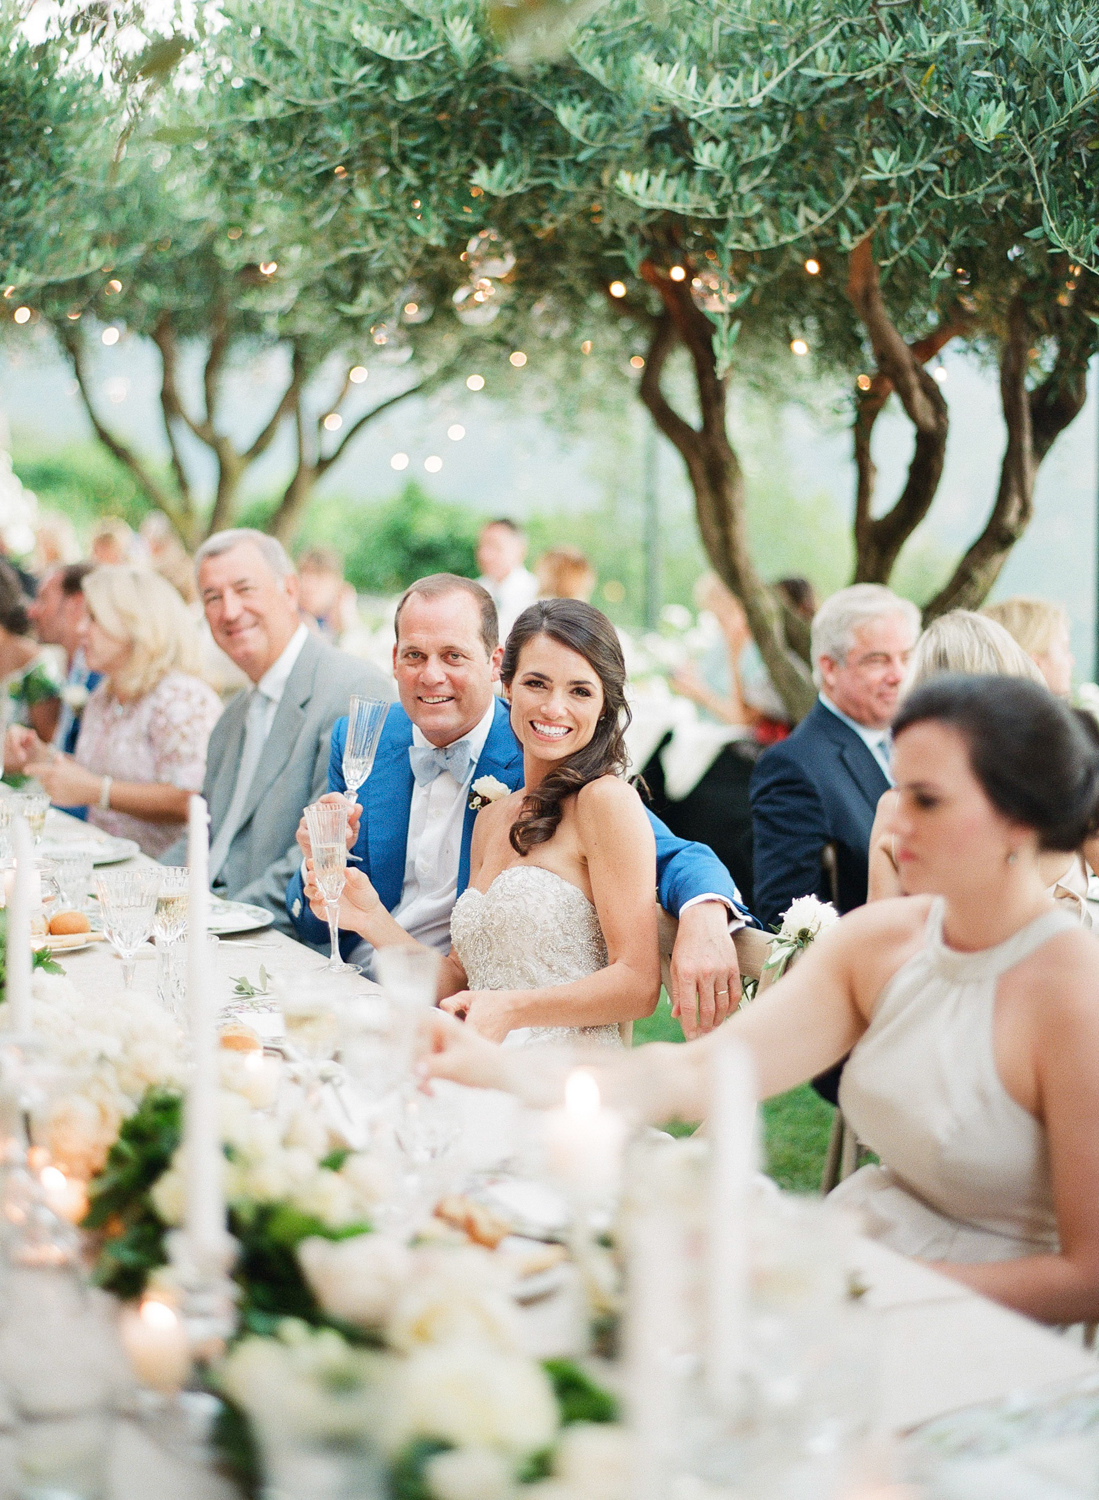 The bride toasts champagne during the Amalfi Coast wedding reception; Sylvie Gil Photography